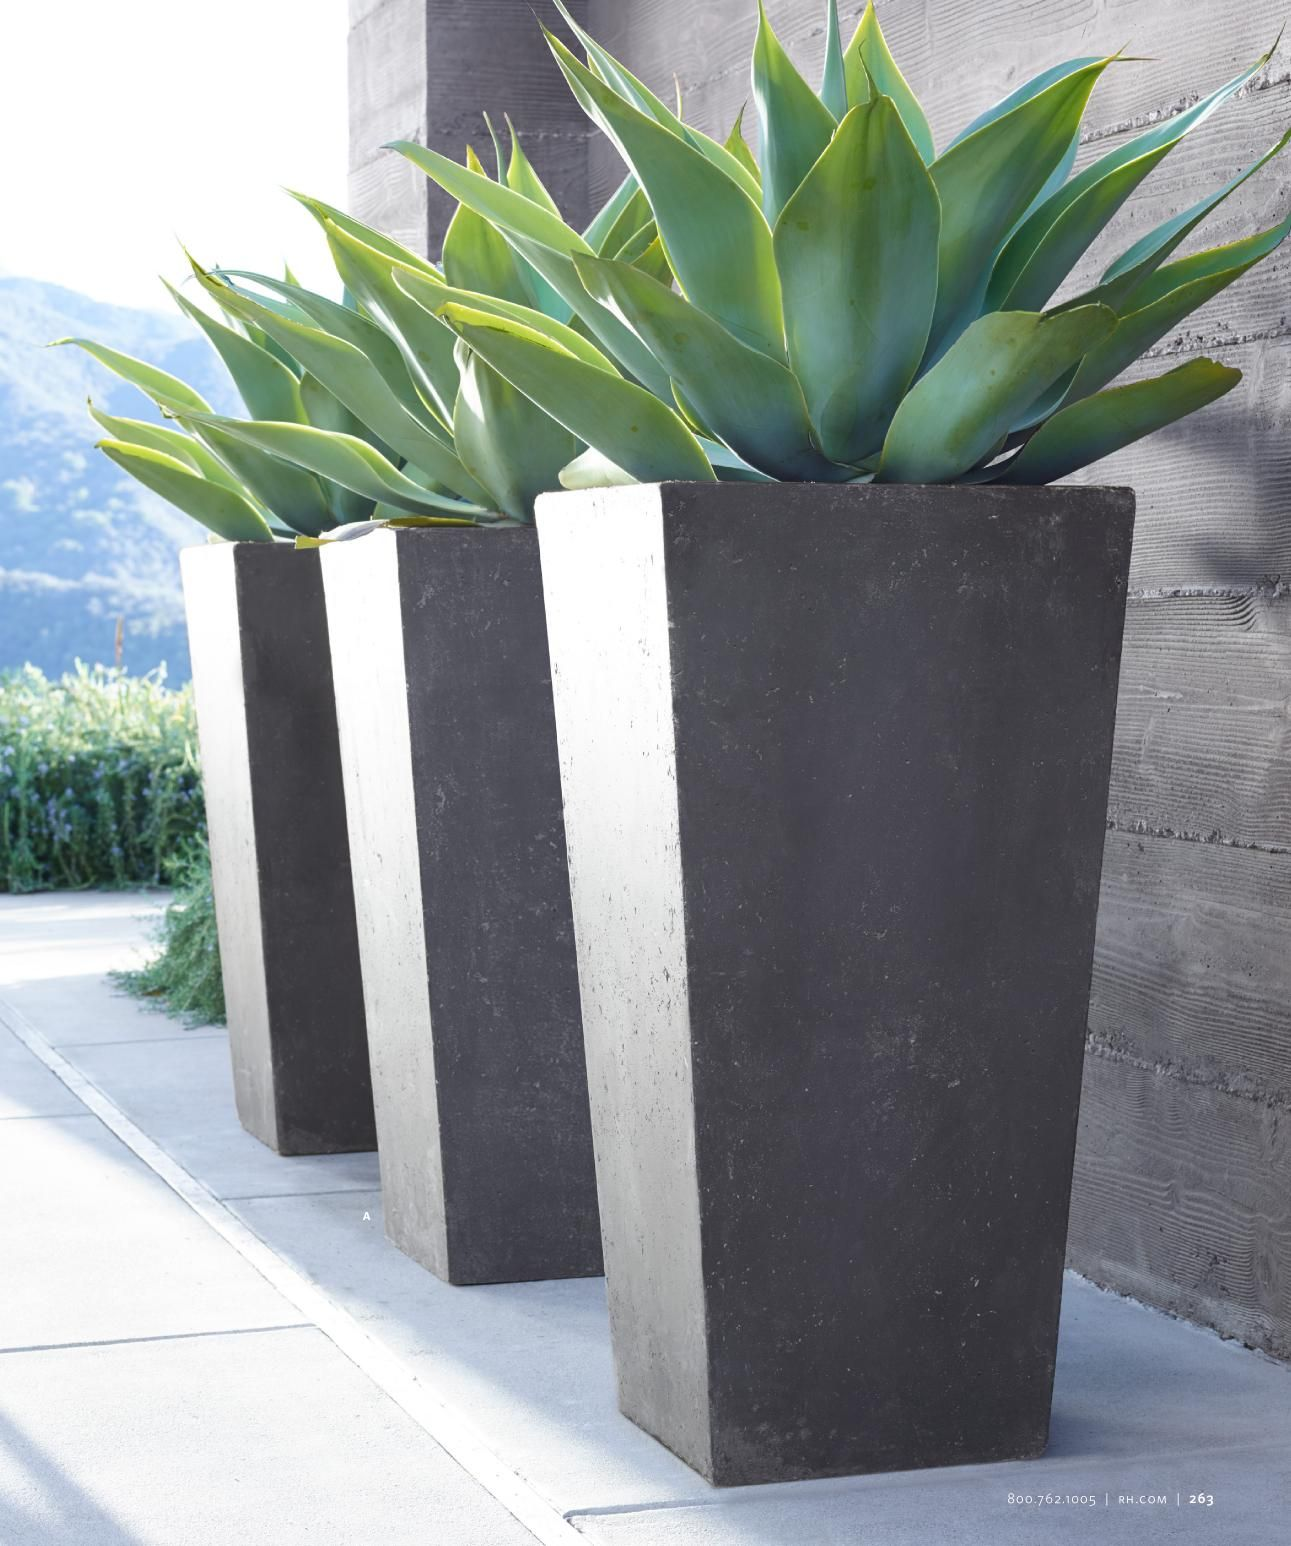 outdoor and with pavers siding beautiful patio planter garden exterior planters decor concrete ceramic tall containers stone